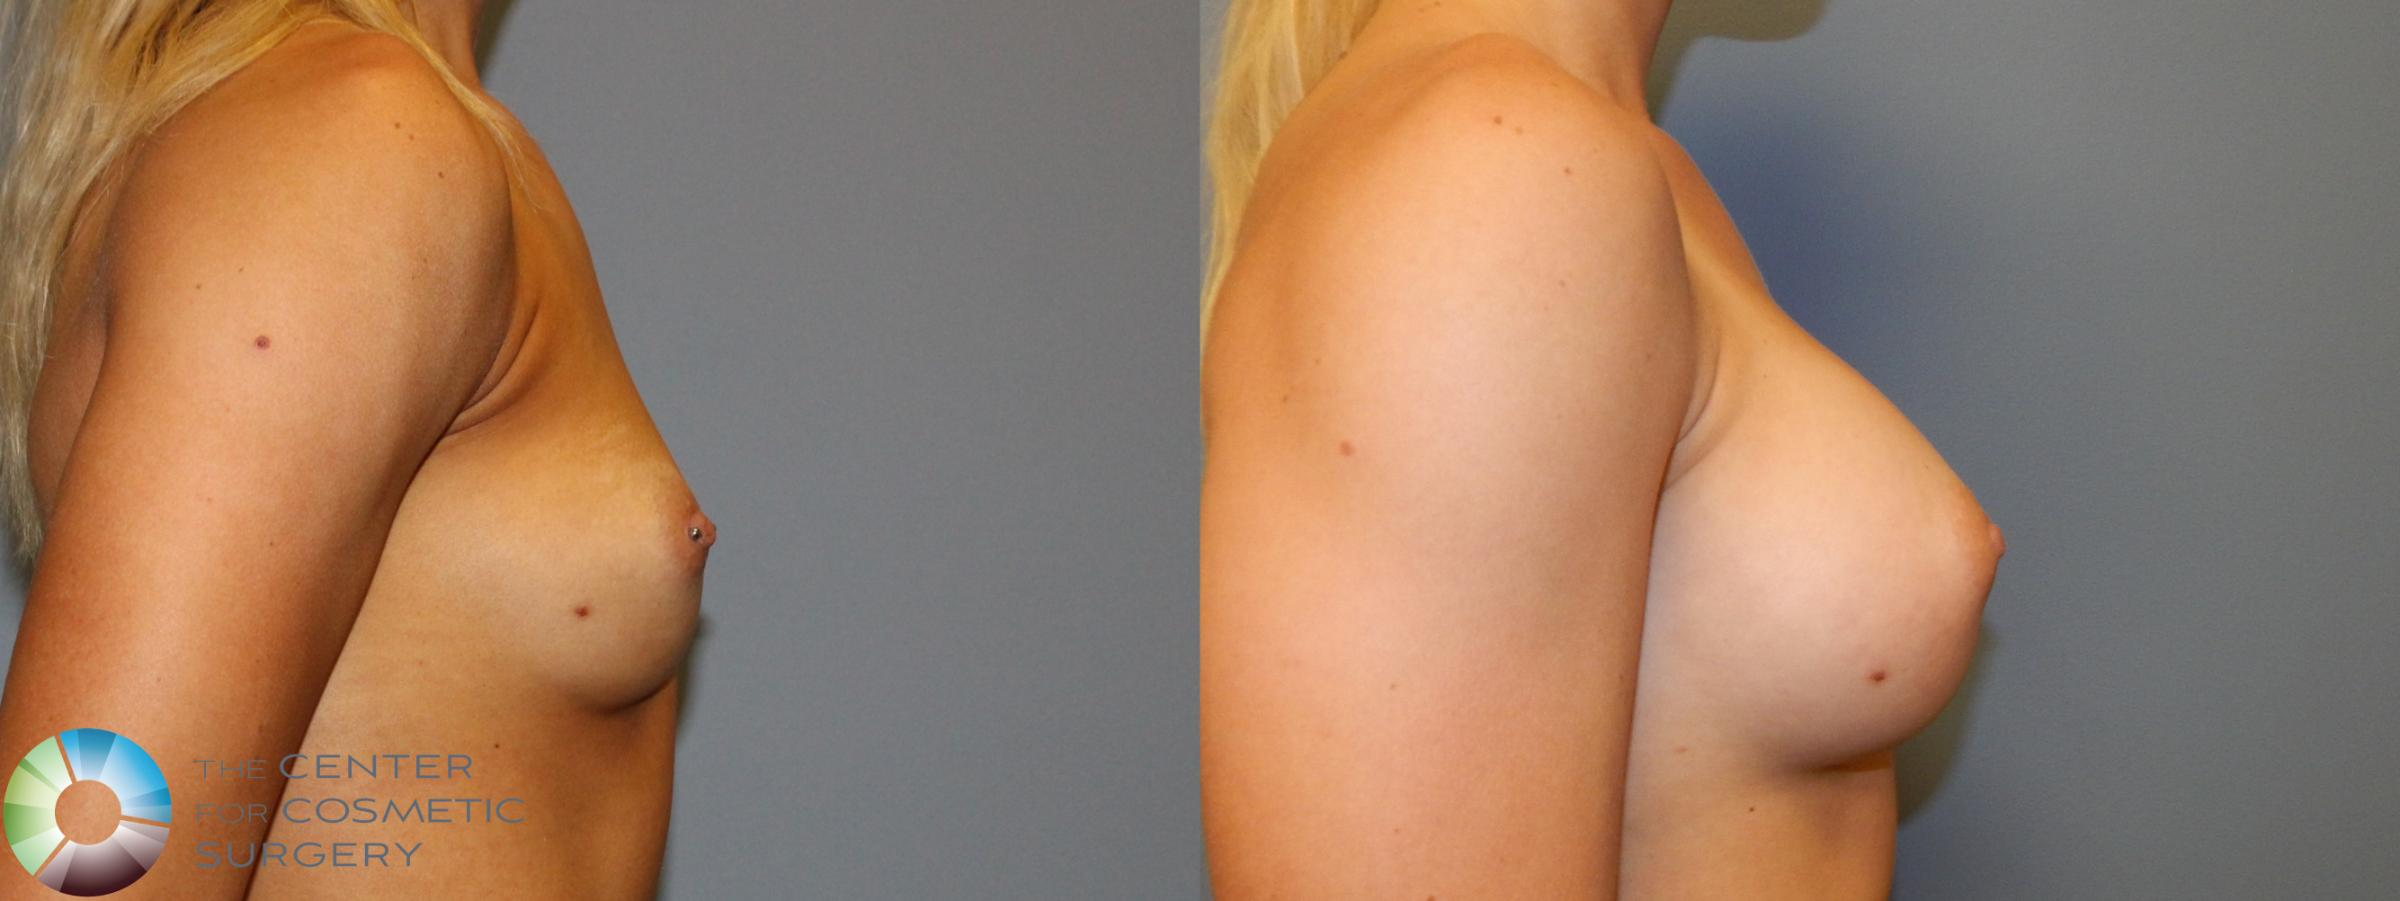 Breast Augmentation Case 860 Before & After View #3 | Golden, CO | The Center for Cosmetic Surgery